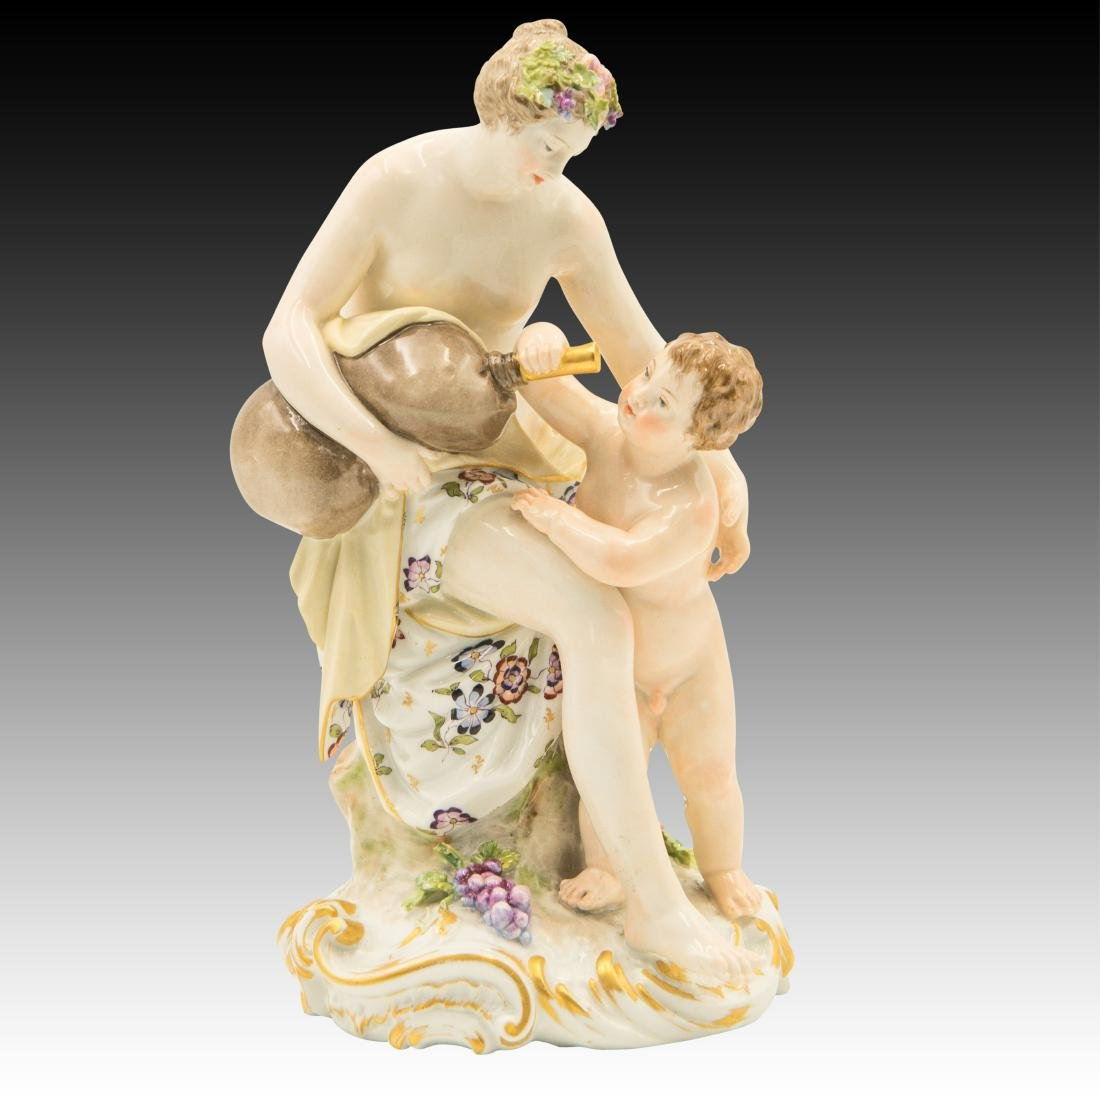 KPM Semi-nude Woman and Child Figurine